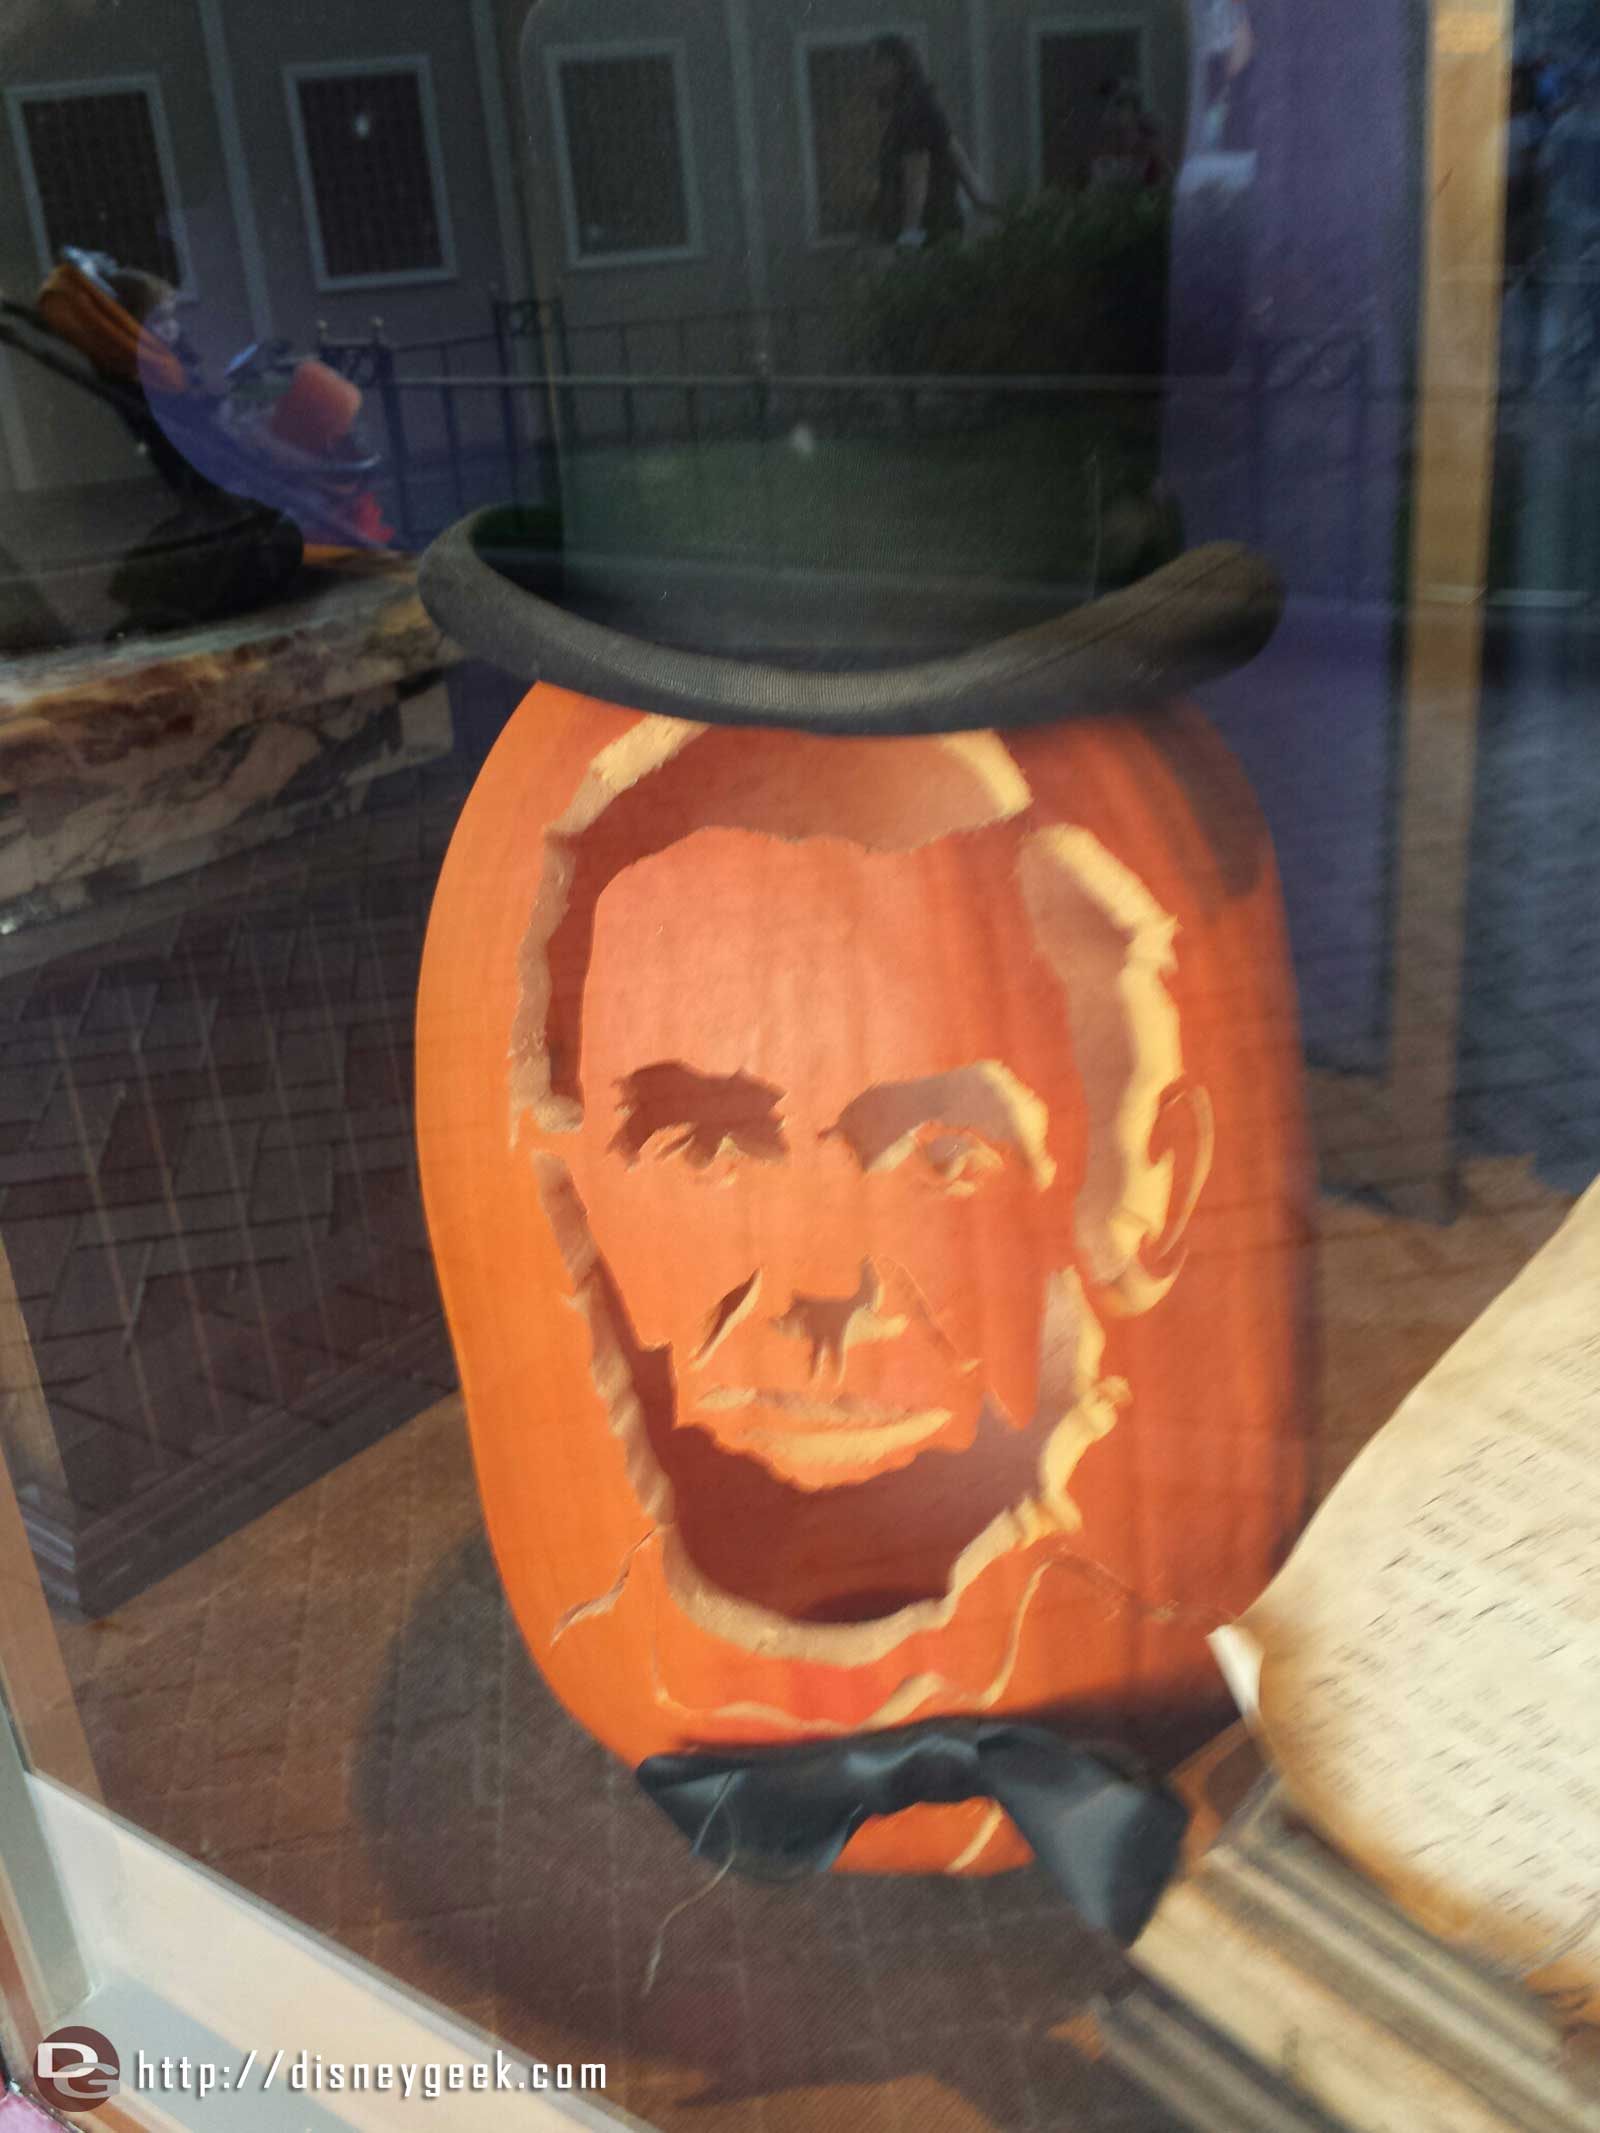 A Lincoln pumpkin in the Opera house window Main Street USA #Disneyland